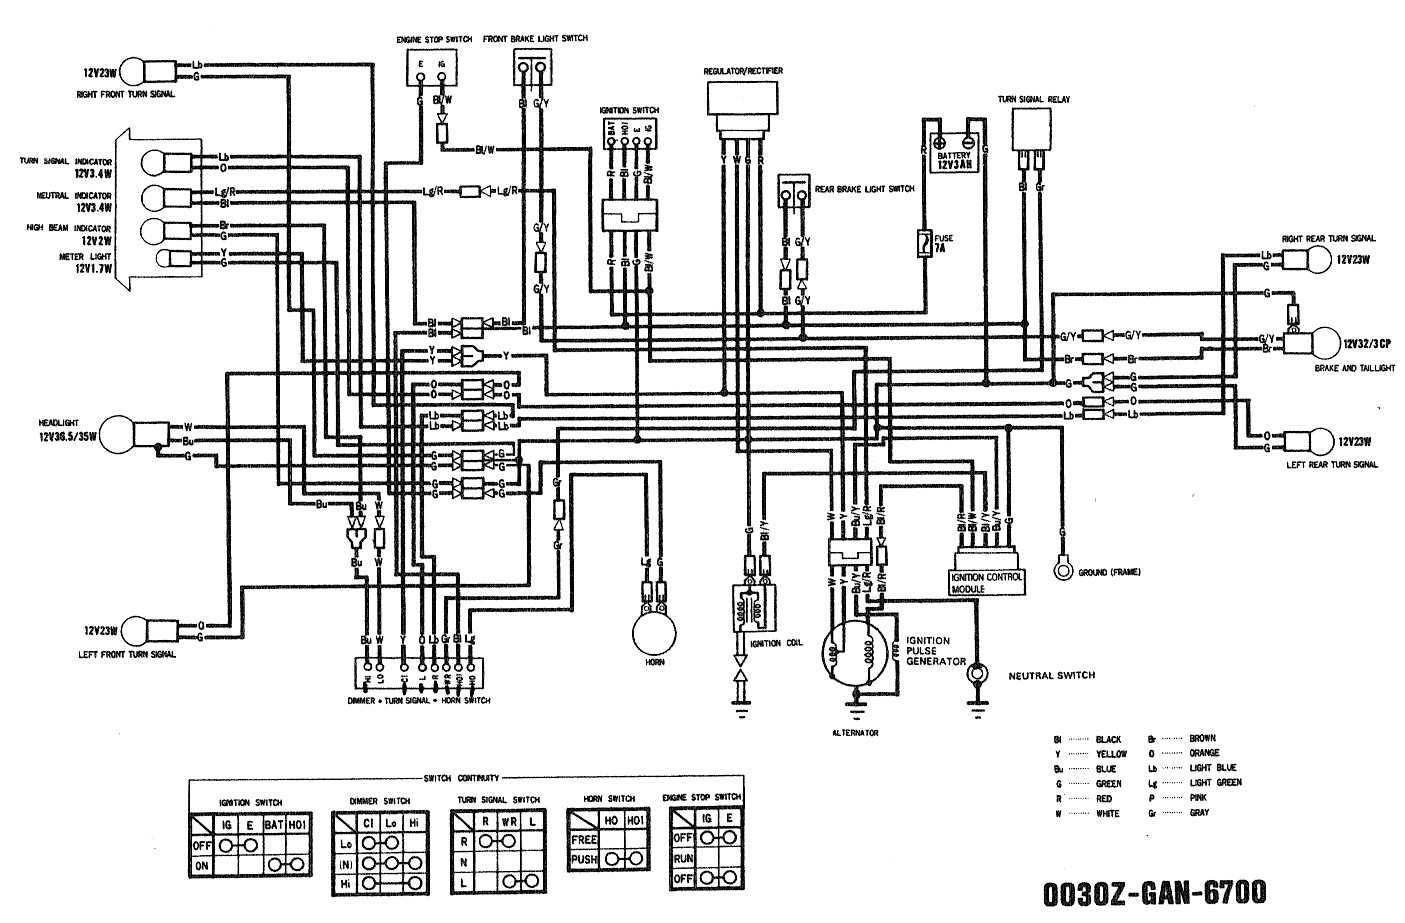 Beautiful c70 wiring diagram images wiring diagram ideas awesome c70 wiring diagram photos electrical diagram ideas asfbconference2016 Choice Image